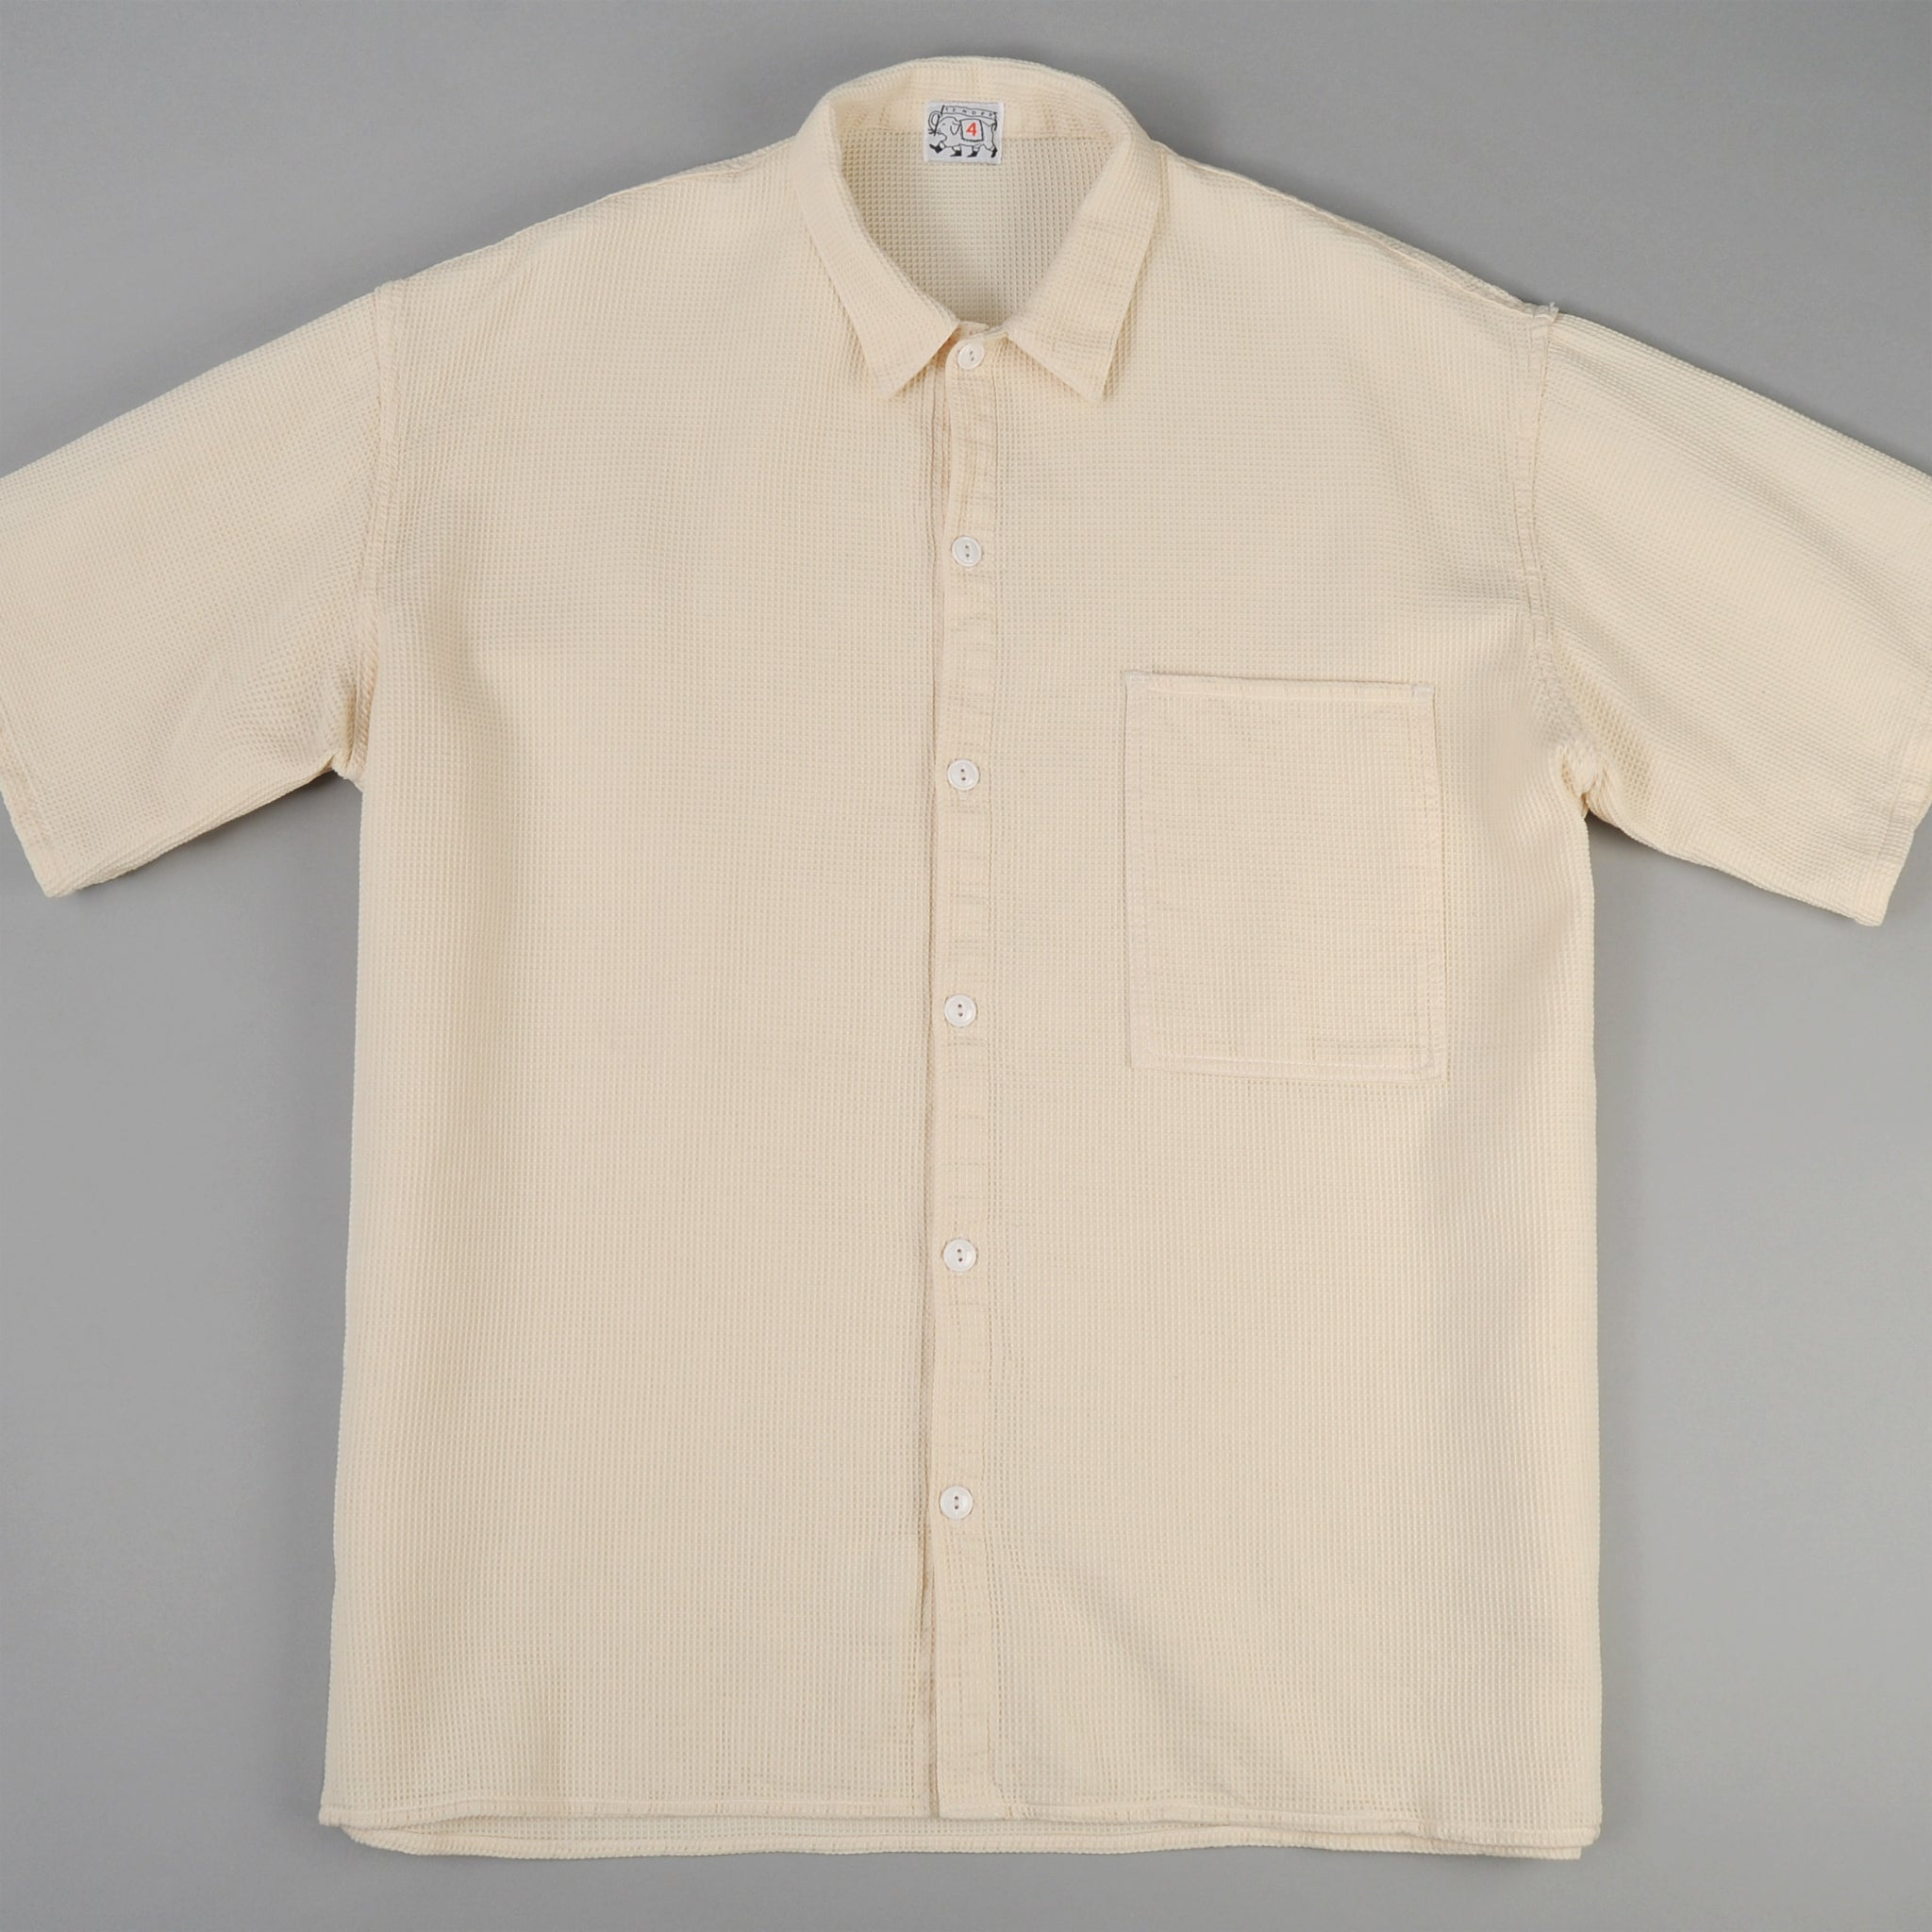 Tender Co. Square Tail Short Sleeve Shirt, Beekeeper's Cloth, White